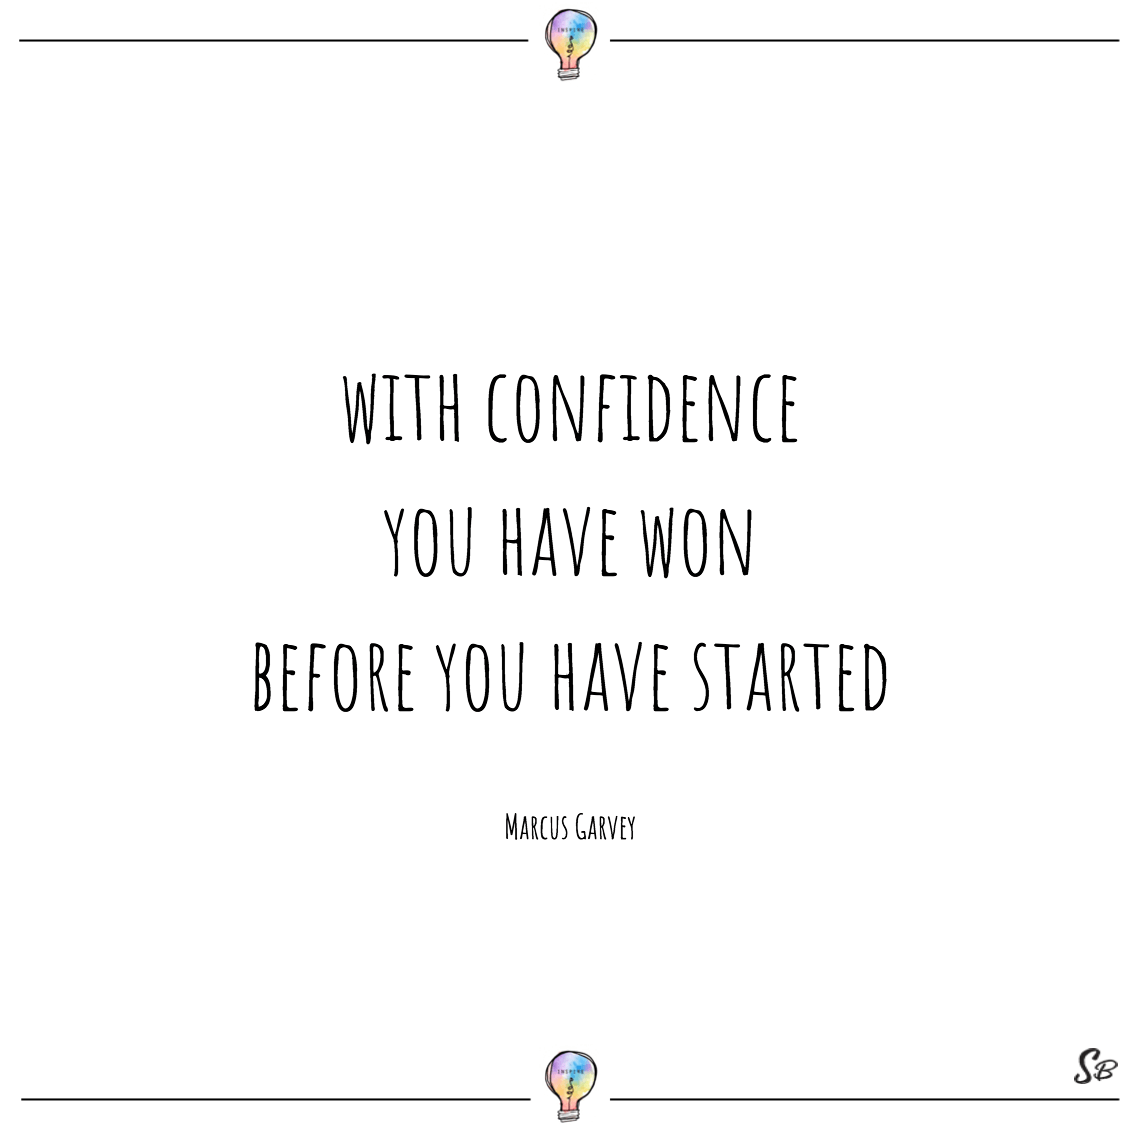 With confidence you have won before you have started marcus garvey